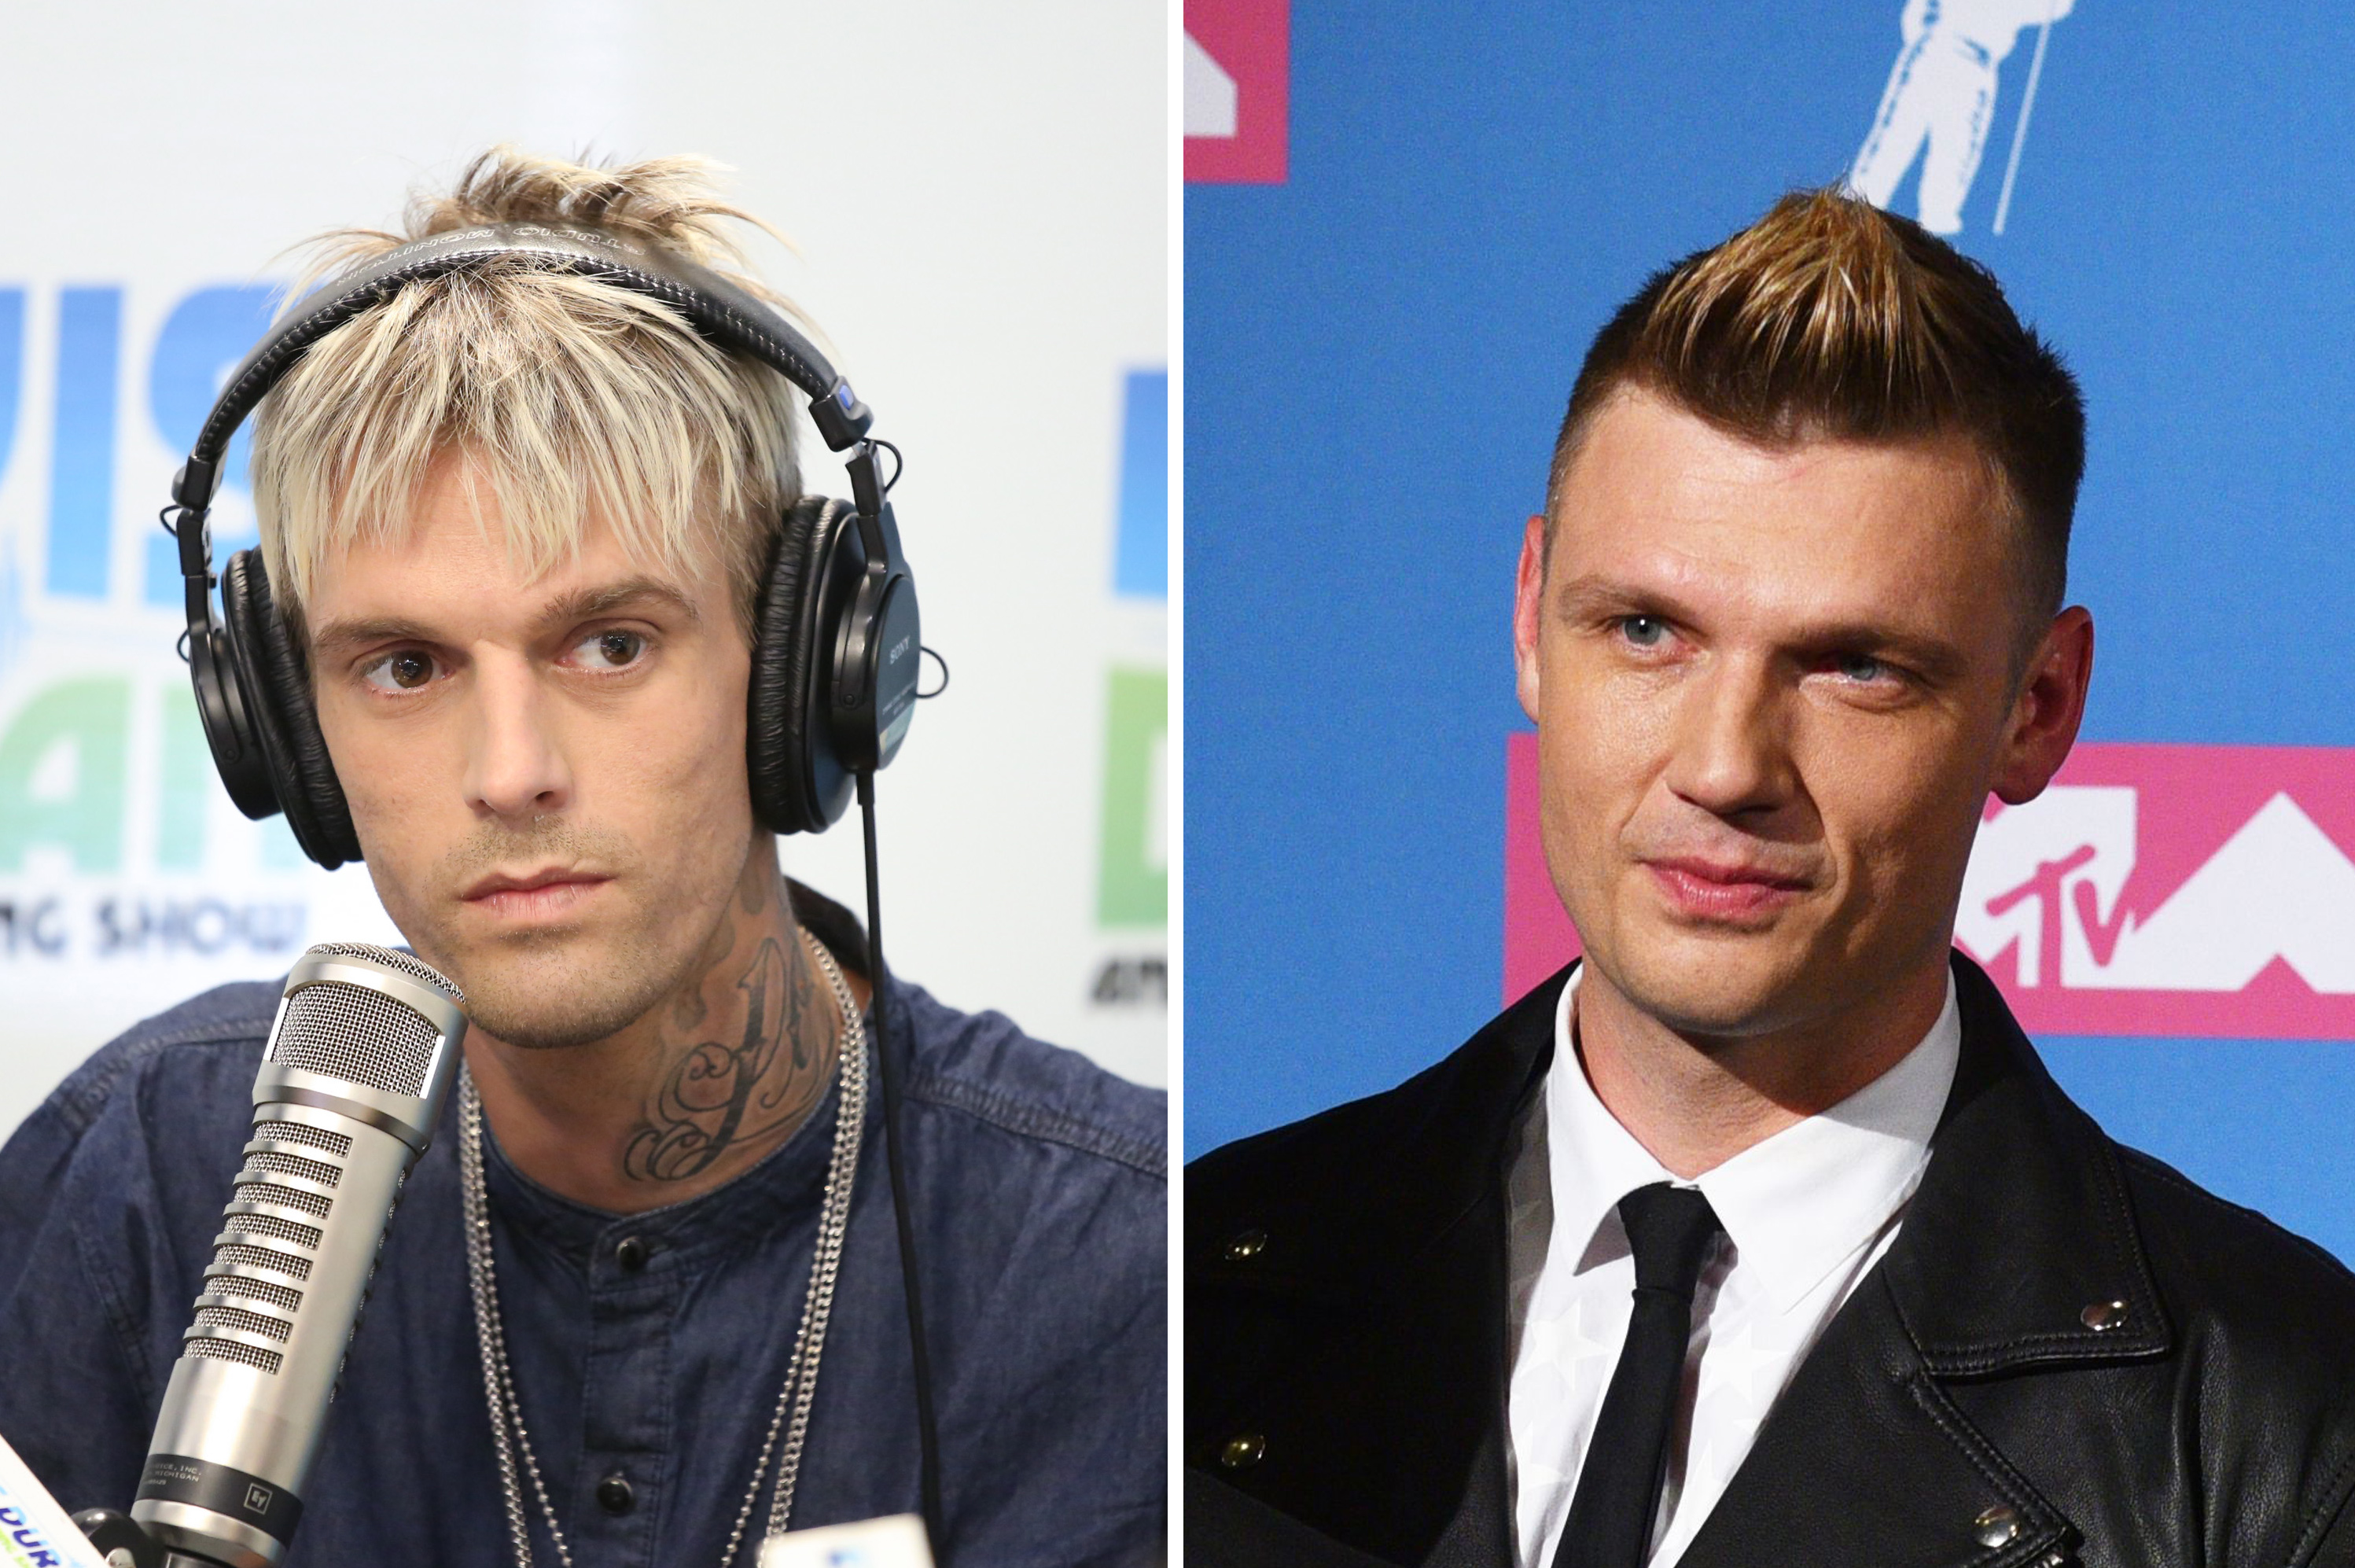 Nick Carter Gets Restraining Order Against Aaron, Claims Brother Threatened to Kill Pregnant Wife